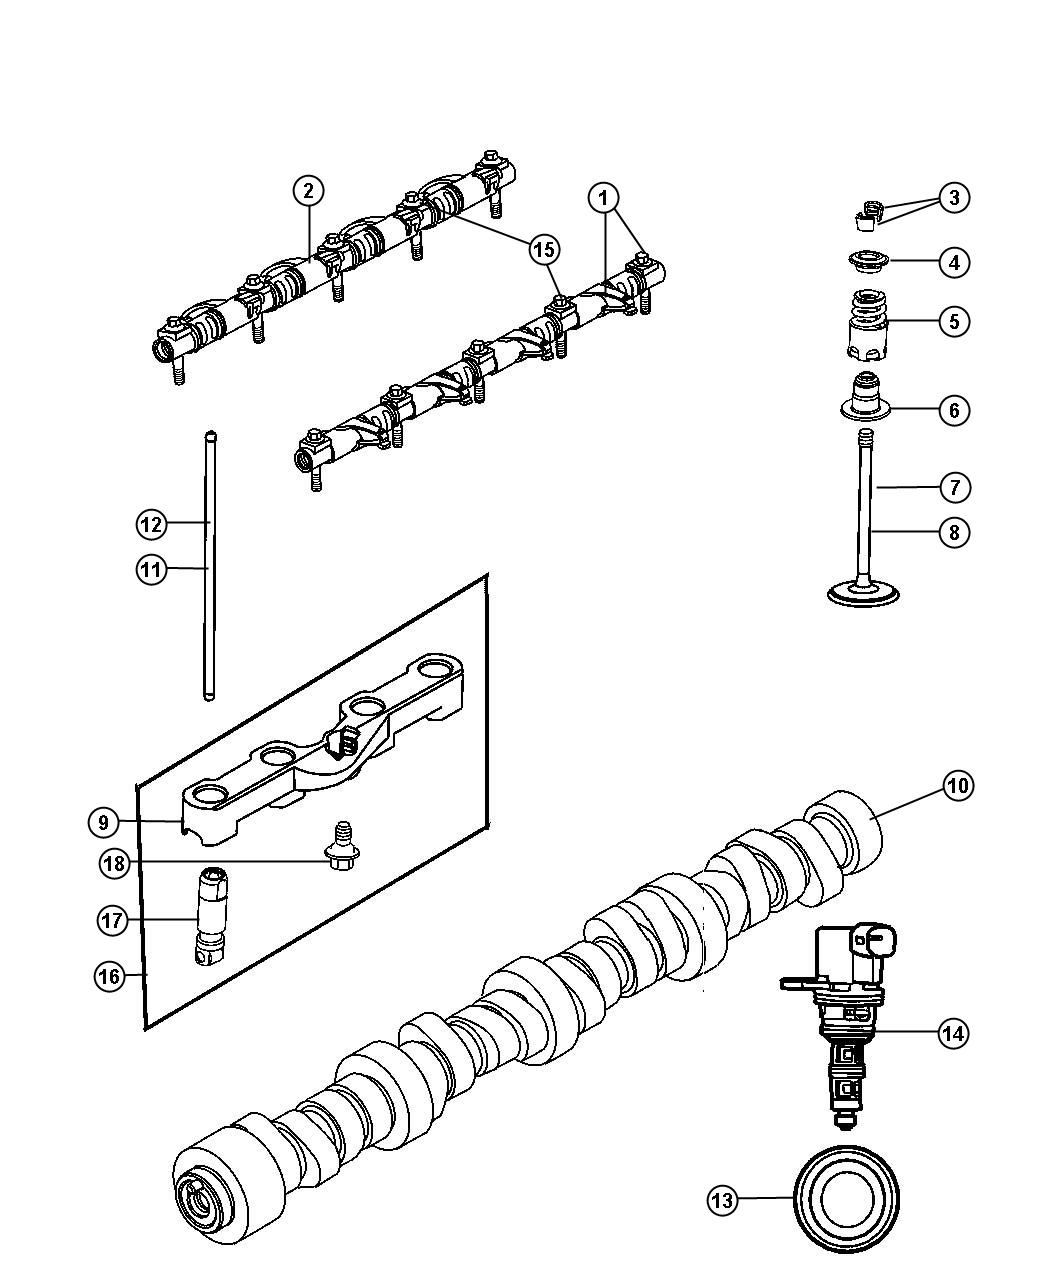 Jeep Commander Used for: LIFTERS AND YOKE. Hydraulic